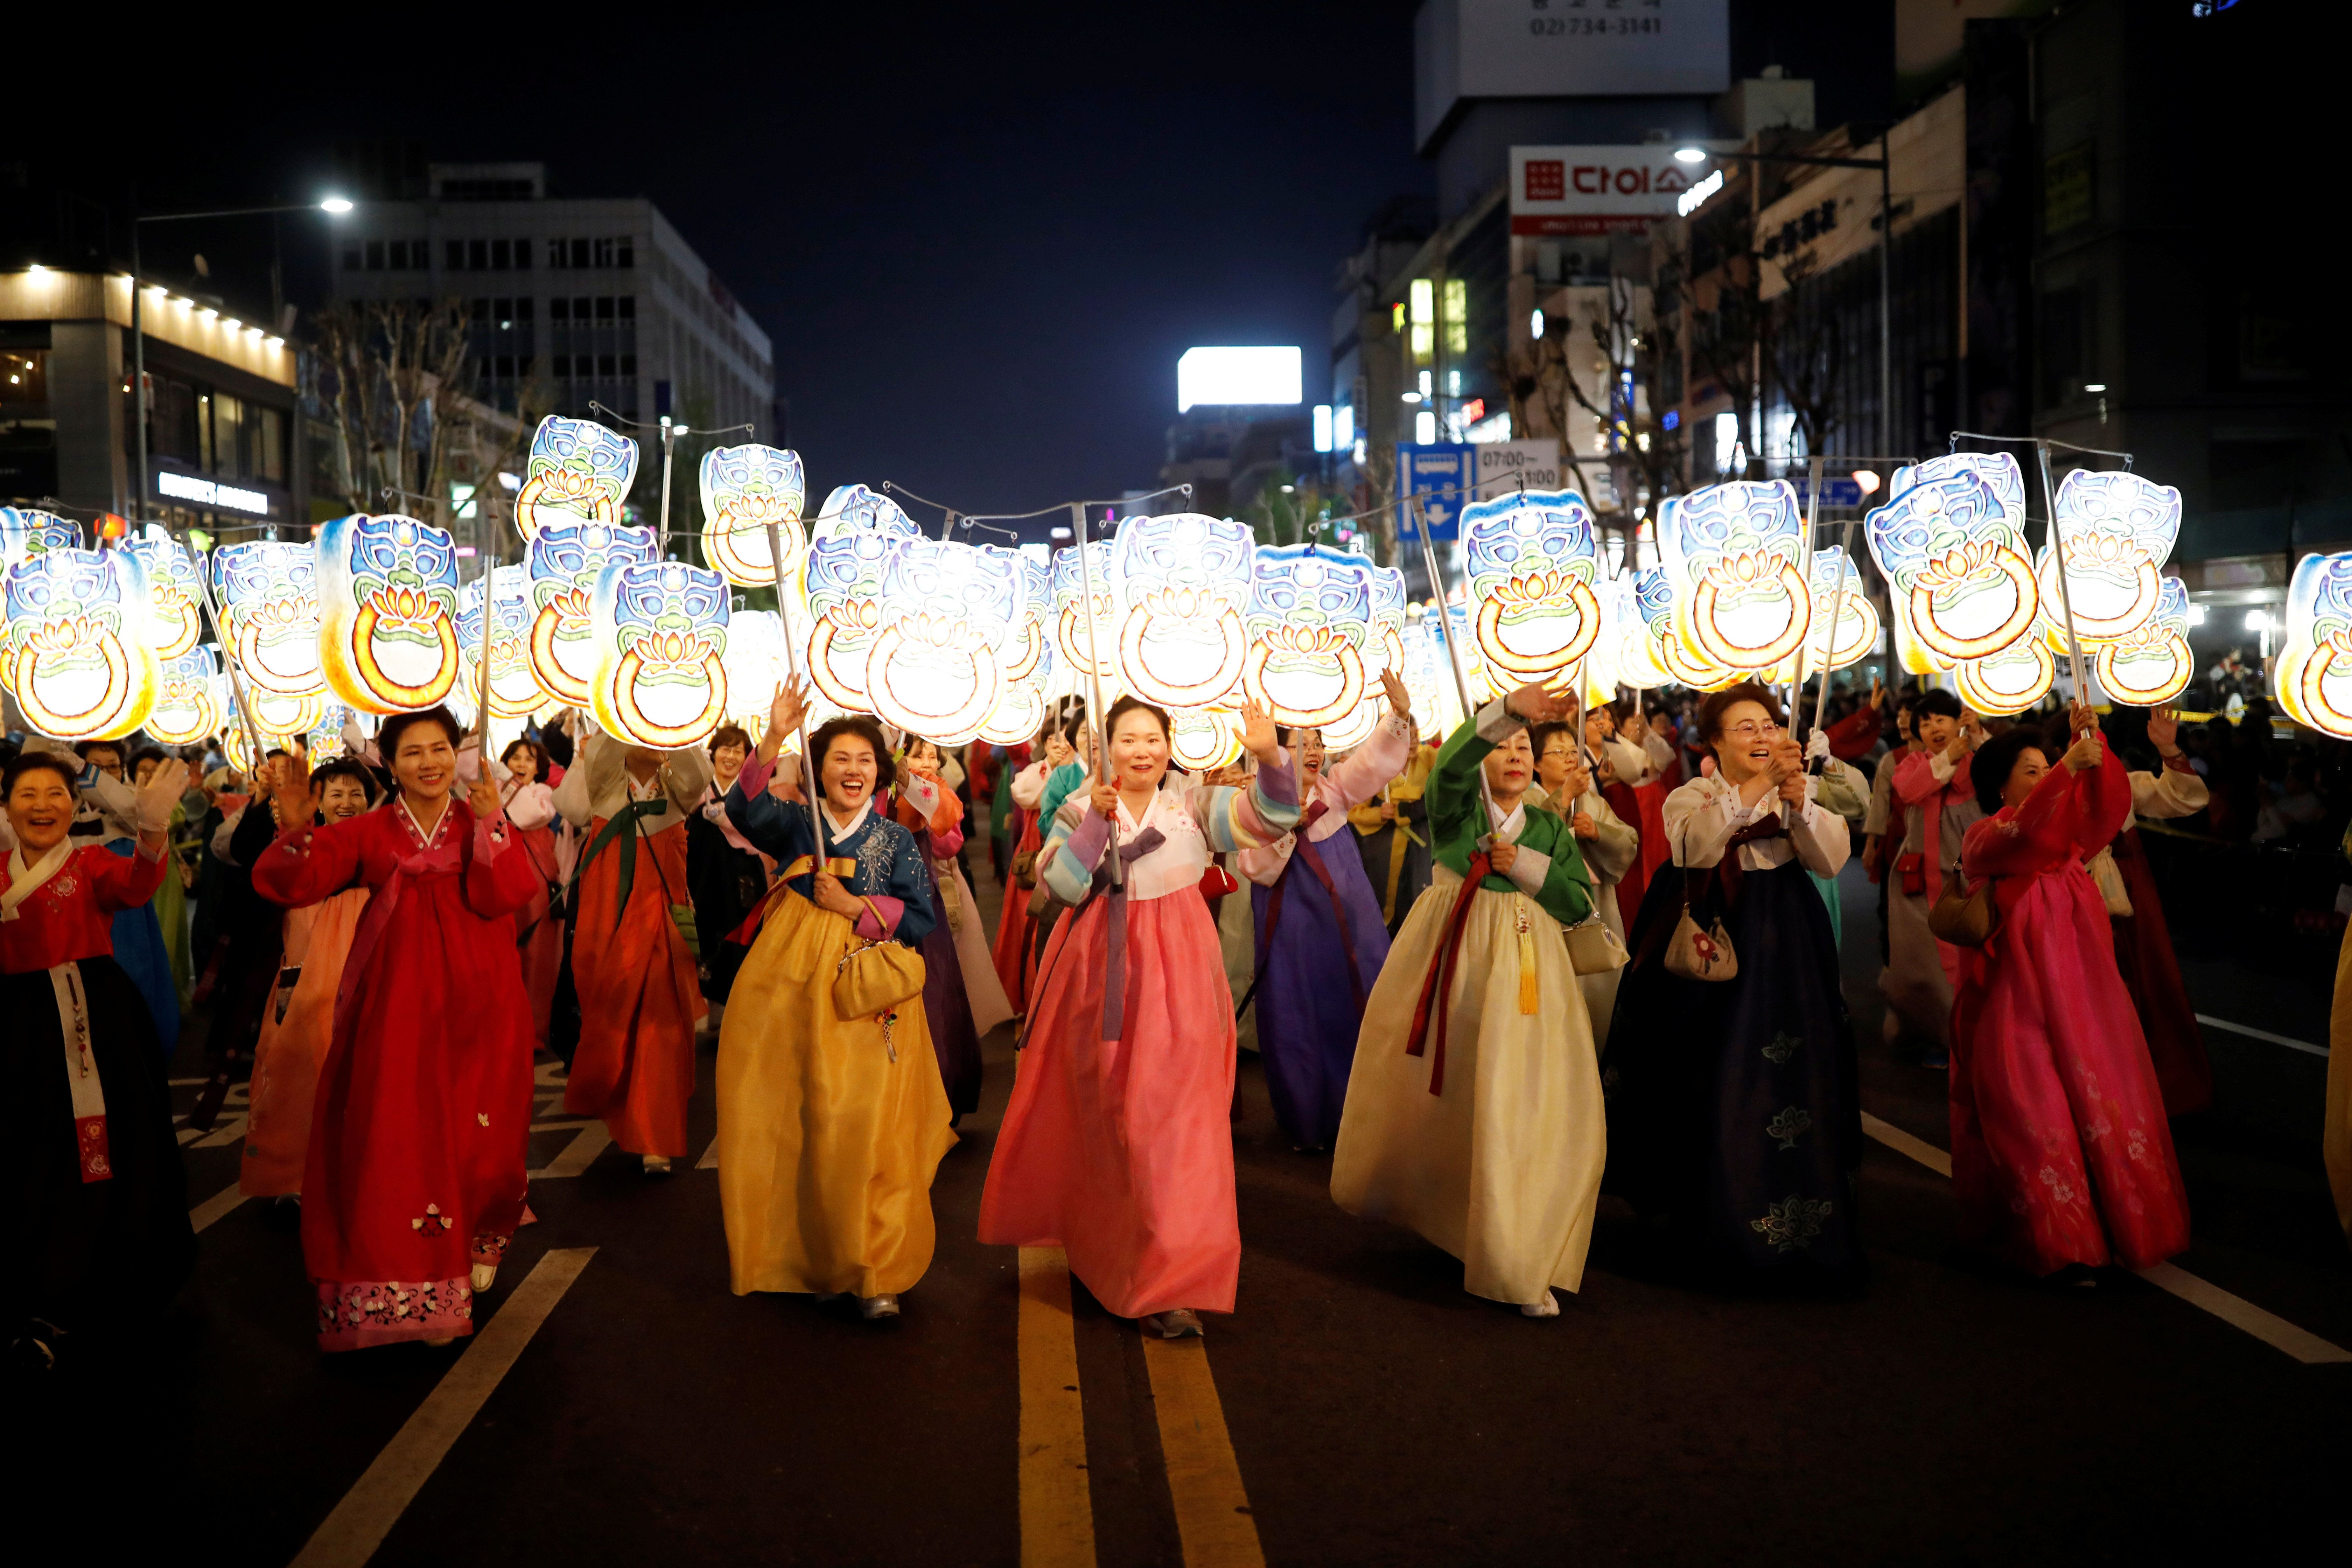 Buddhist believers carrying lanterns march during a Lotus Lantern parade in celebration of the upcoming birthday of Buddha in Seoul, South Korea April 29, 2017. REUTERS/Kim Hong-Ji